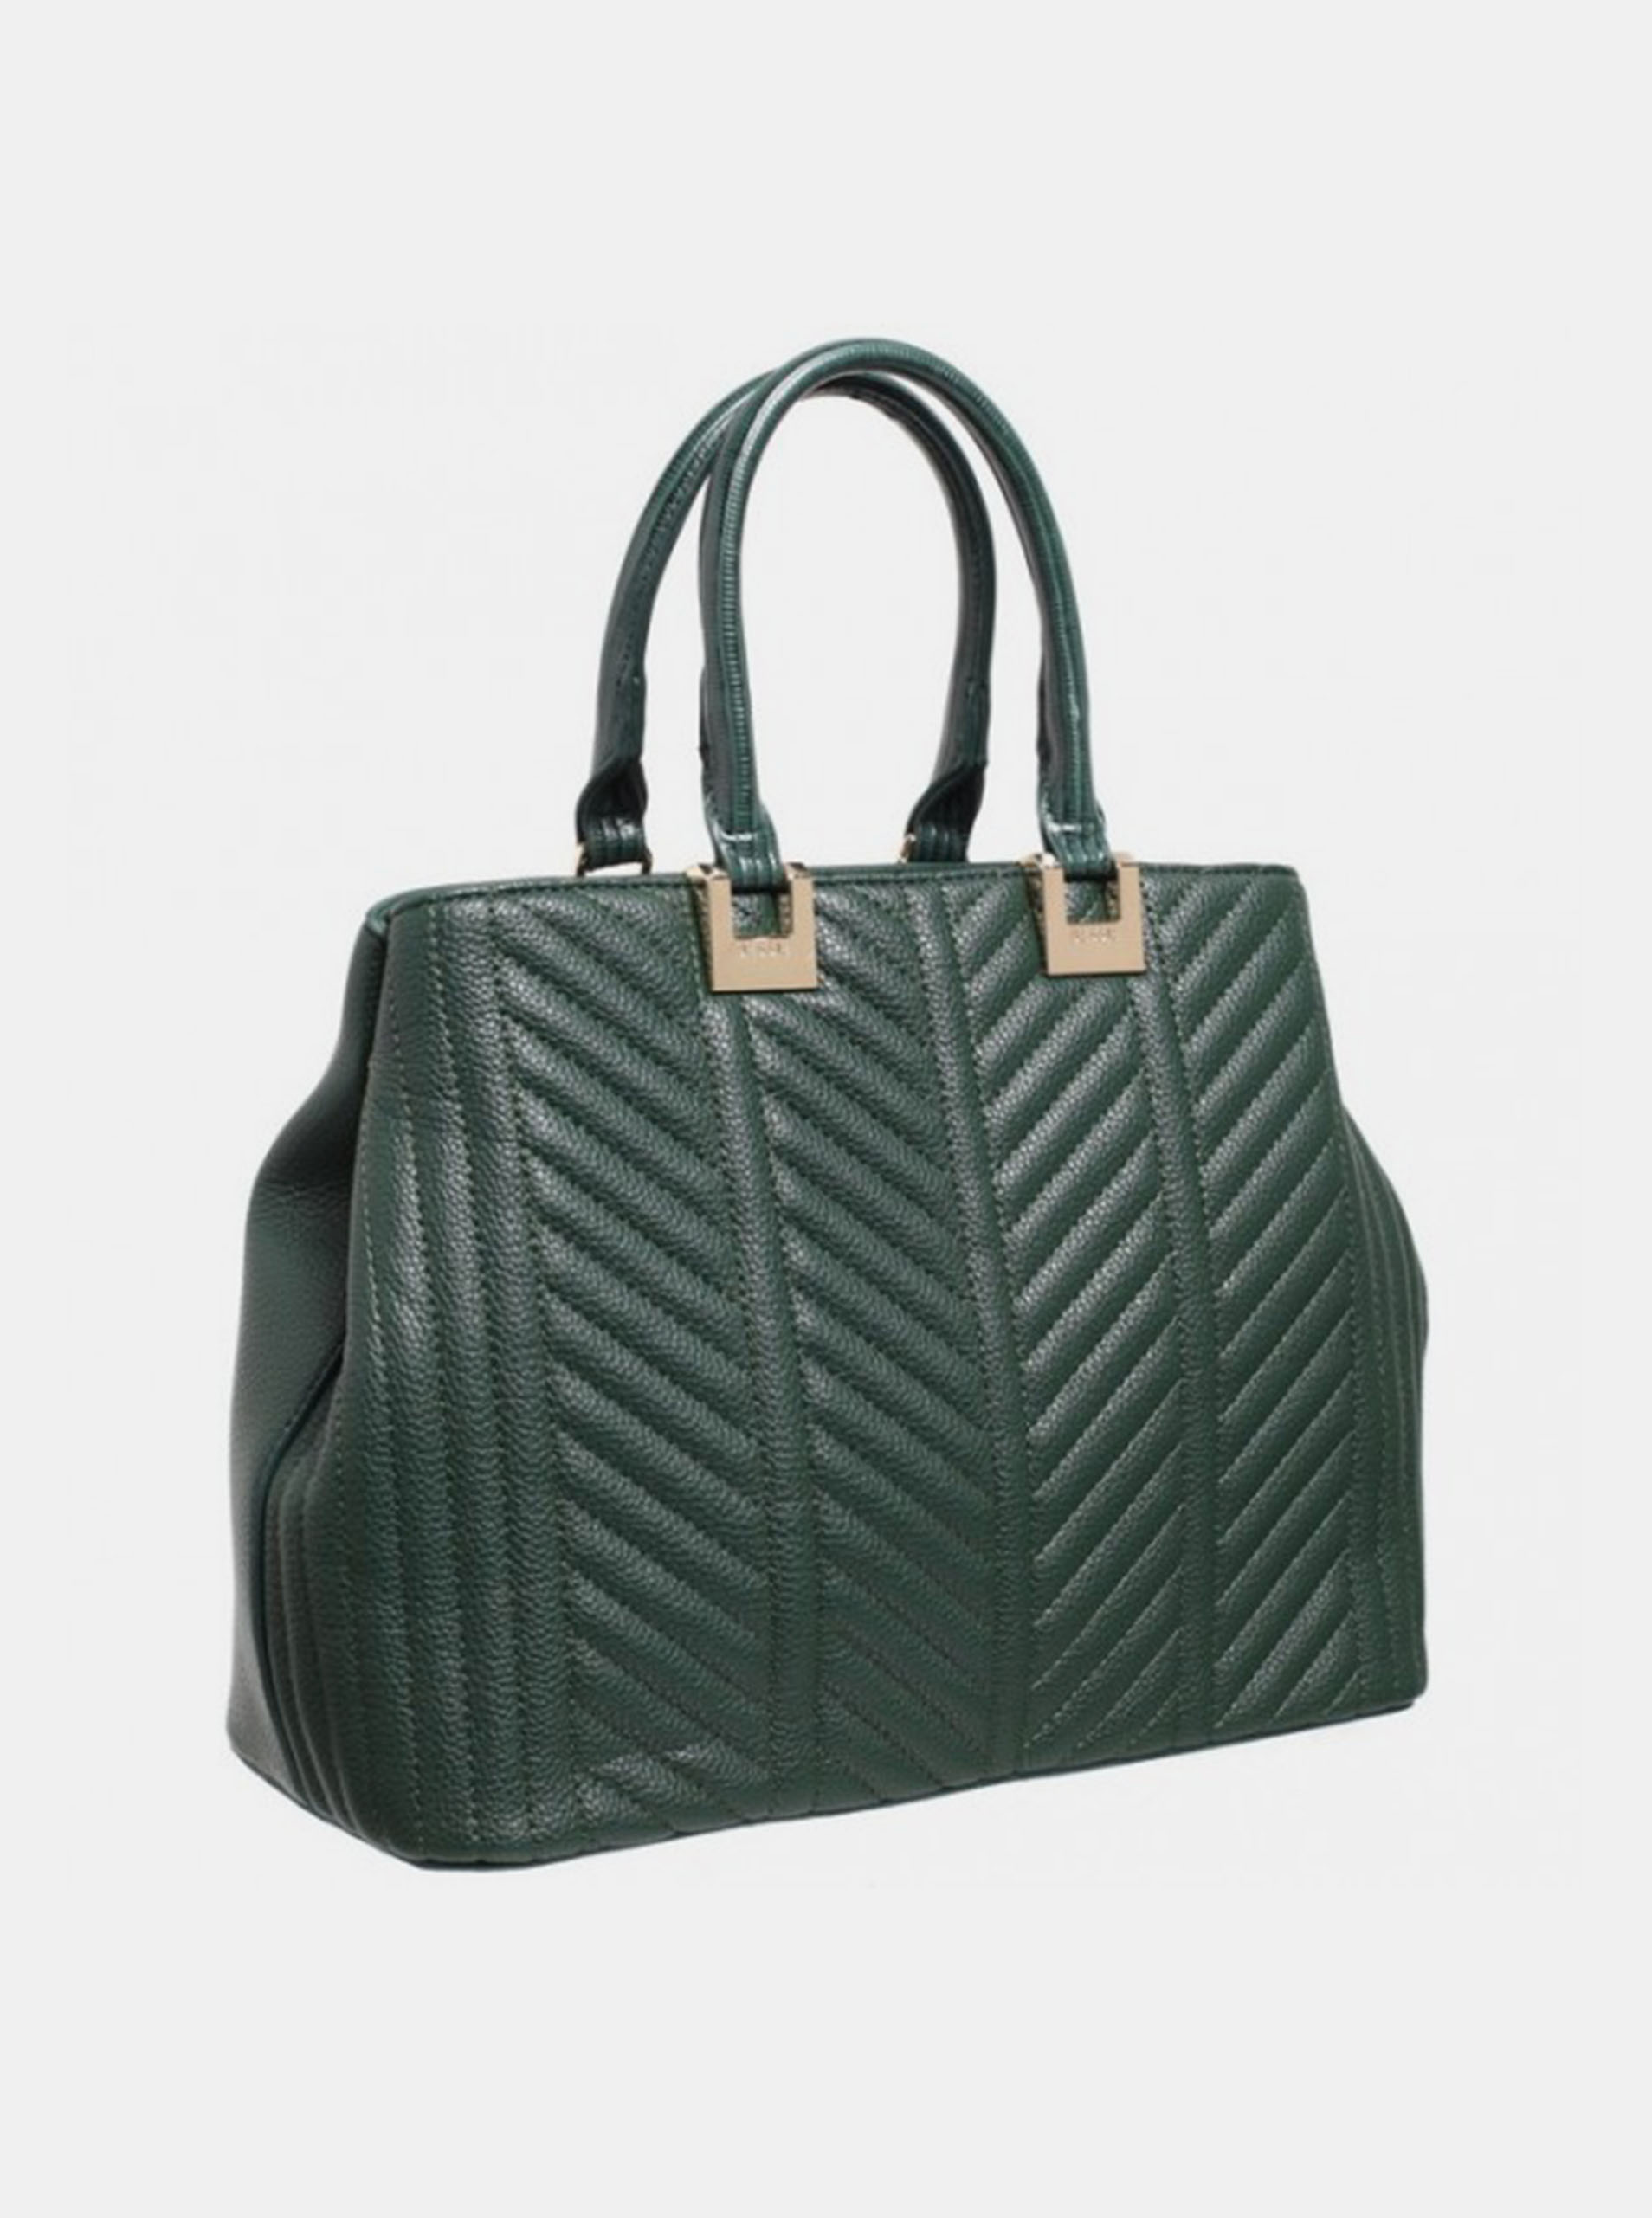 Bessie London green handbag